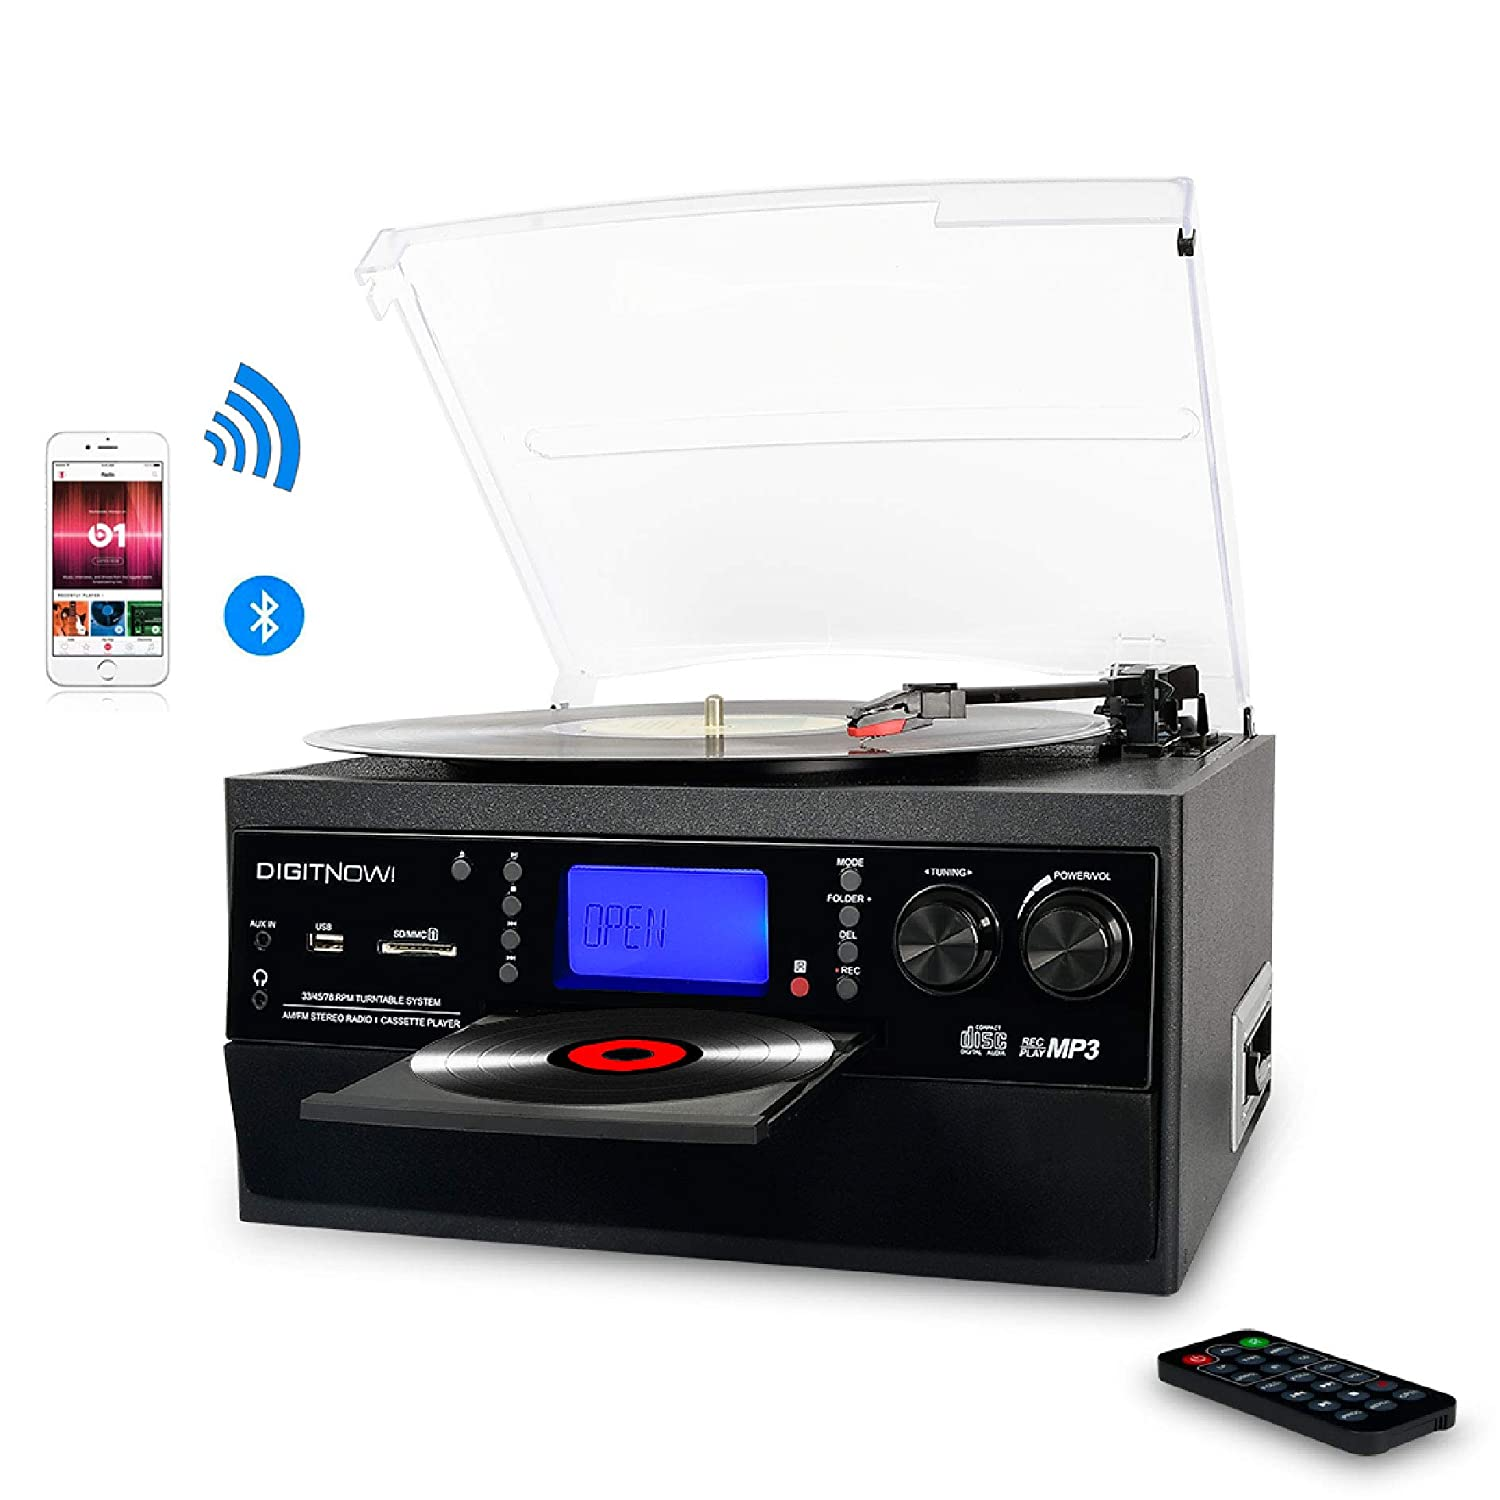 dd66c714f DIGITNOW! Bluetooth Viny Record Player Turntable, CD, Cassette, AM/ FM  Radio and Aux in with USB Port & SD Encoding- Remote Control, Built-in  stereo ...